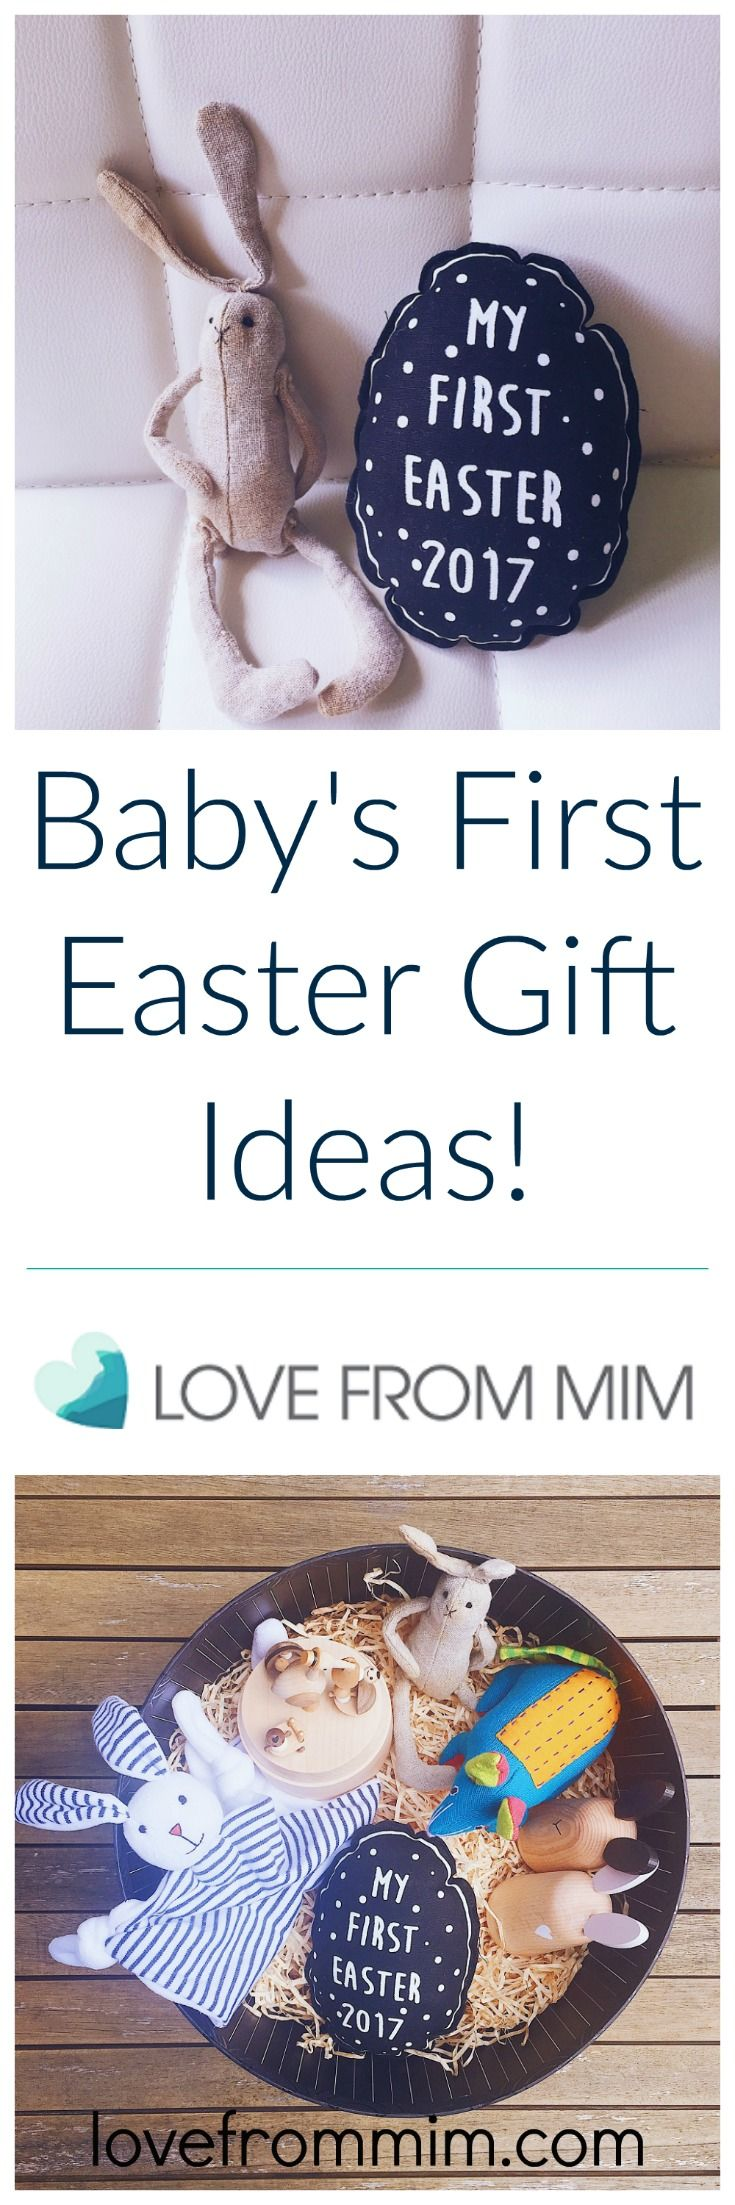 Babys first easter gift ideas must see guide newborn baby babys first easter gift ideas must see guide negle Gallery